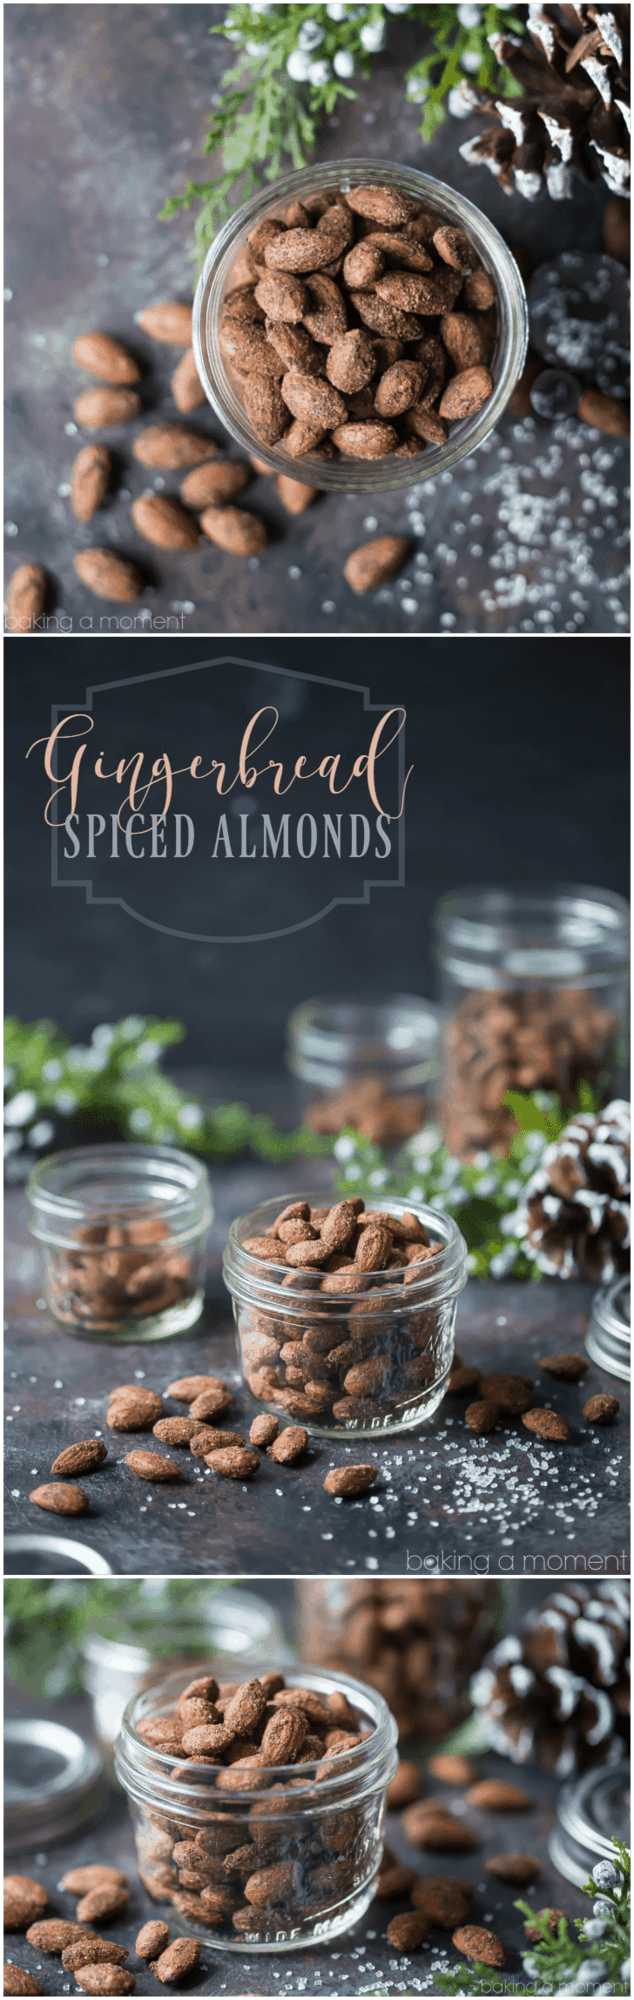 Gingerbread Spiced Almonds: these made a perfect last-minute holiday gift! Whipped up a big batch in just a few minutes, baked them off, and put them into pretty jars tied with ribbon. Tasted just like a gingerbread cookie! food holiday gift